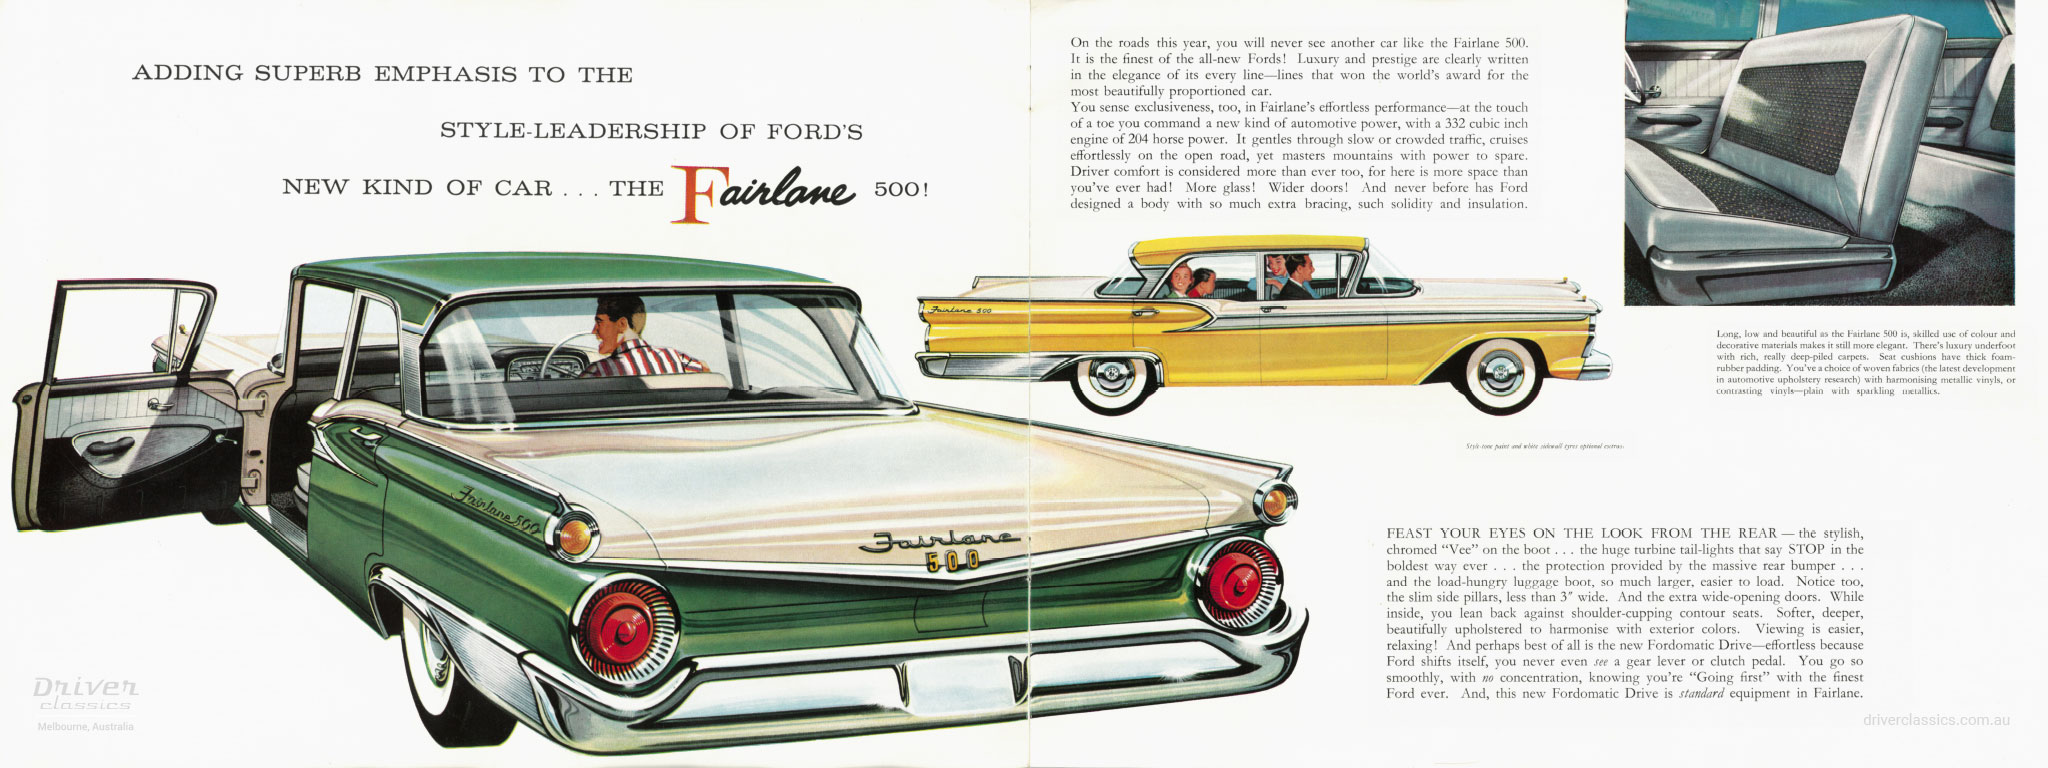 Page spread from 1959 Ford Fairlane 500 Brochure. Adding superb emphasis to the style leadership of Ford's new kind of car... the Fairlane 500.